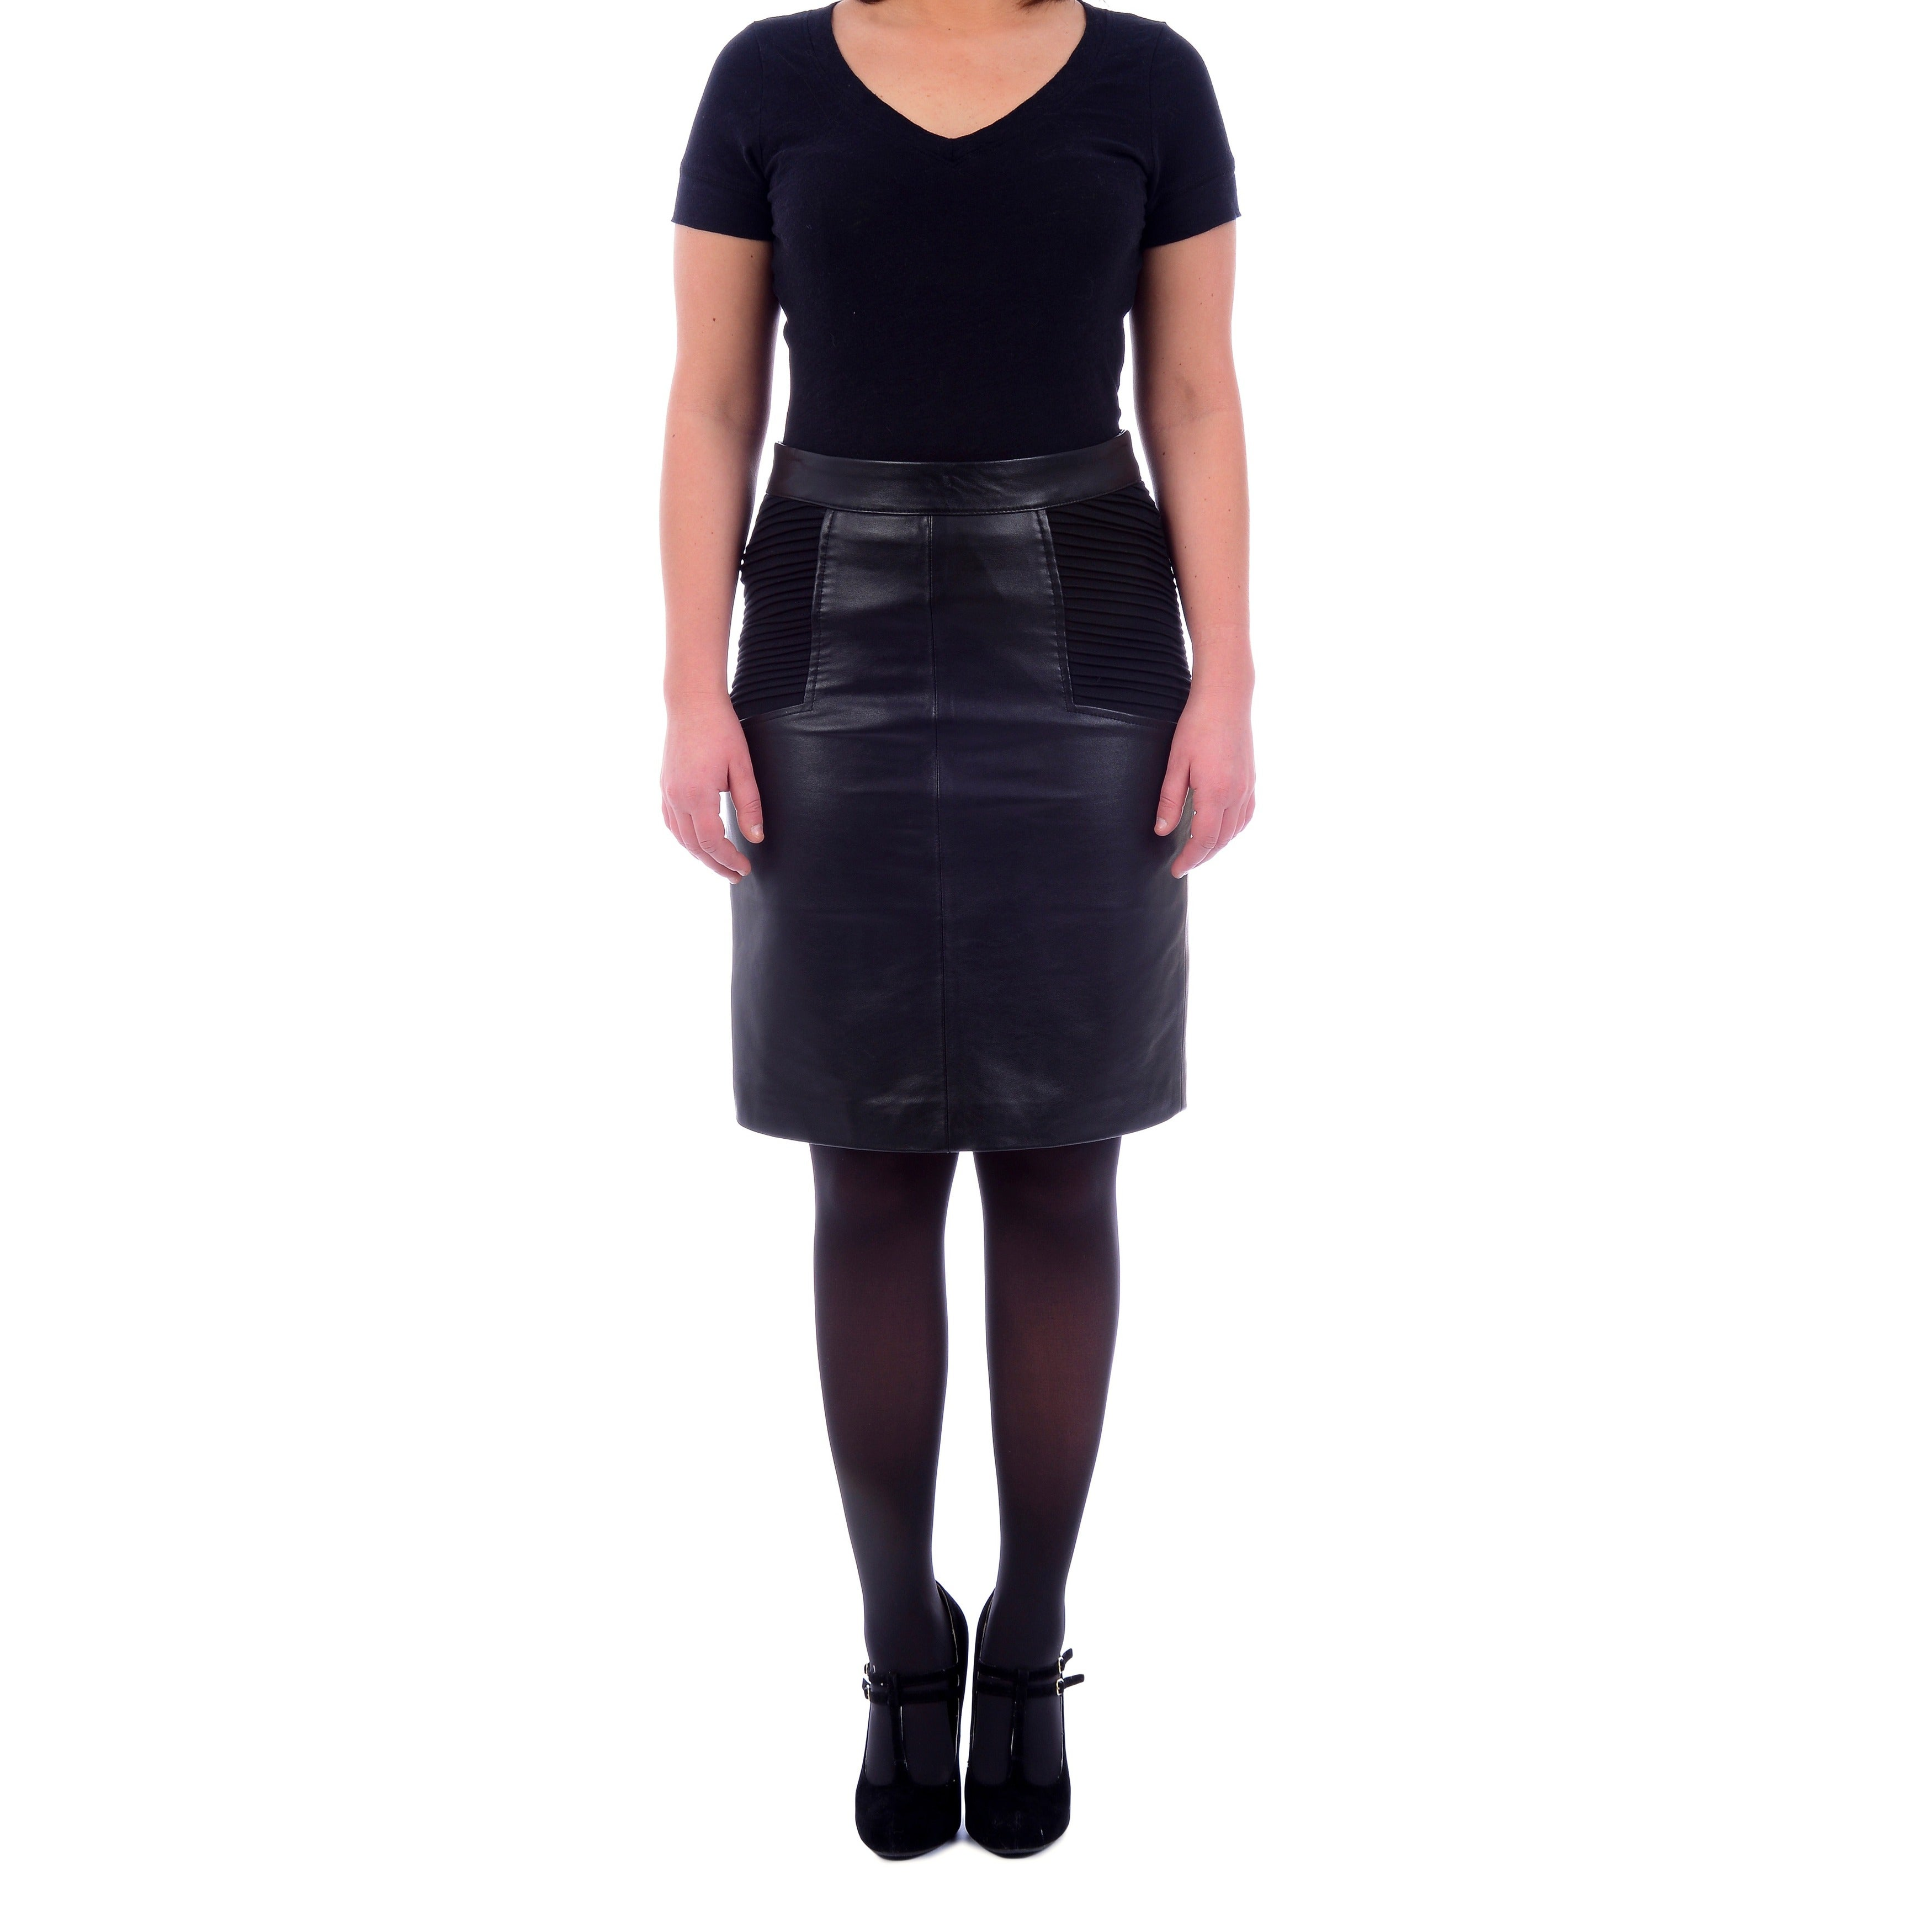 Excelled Women's Leather Skirt with Knit Inserts - Free Shipping Today -  Overstock.com - 16070615